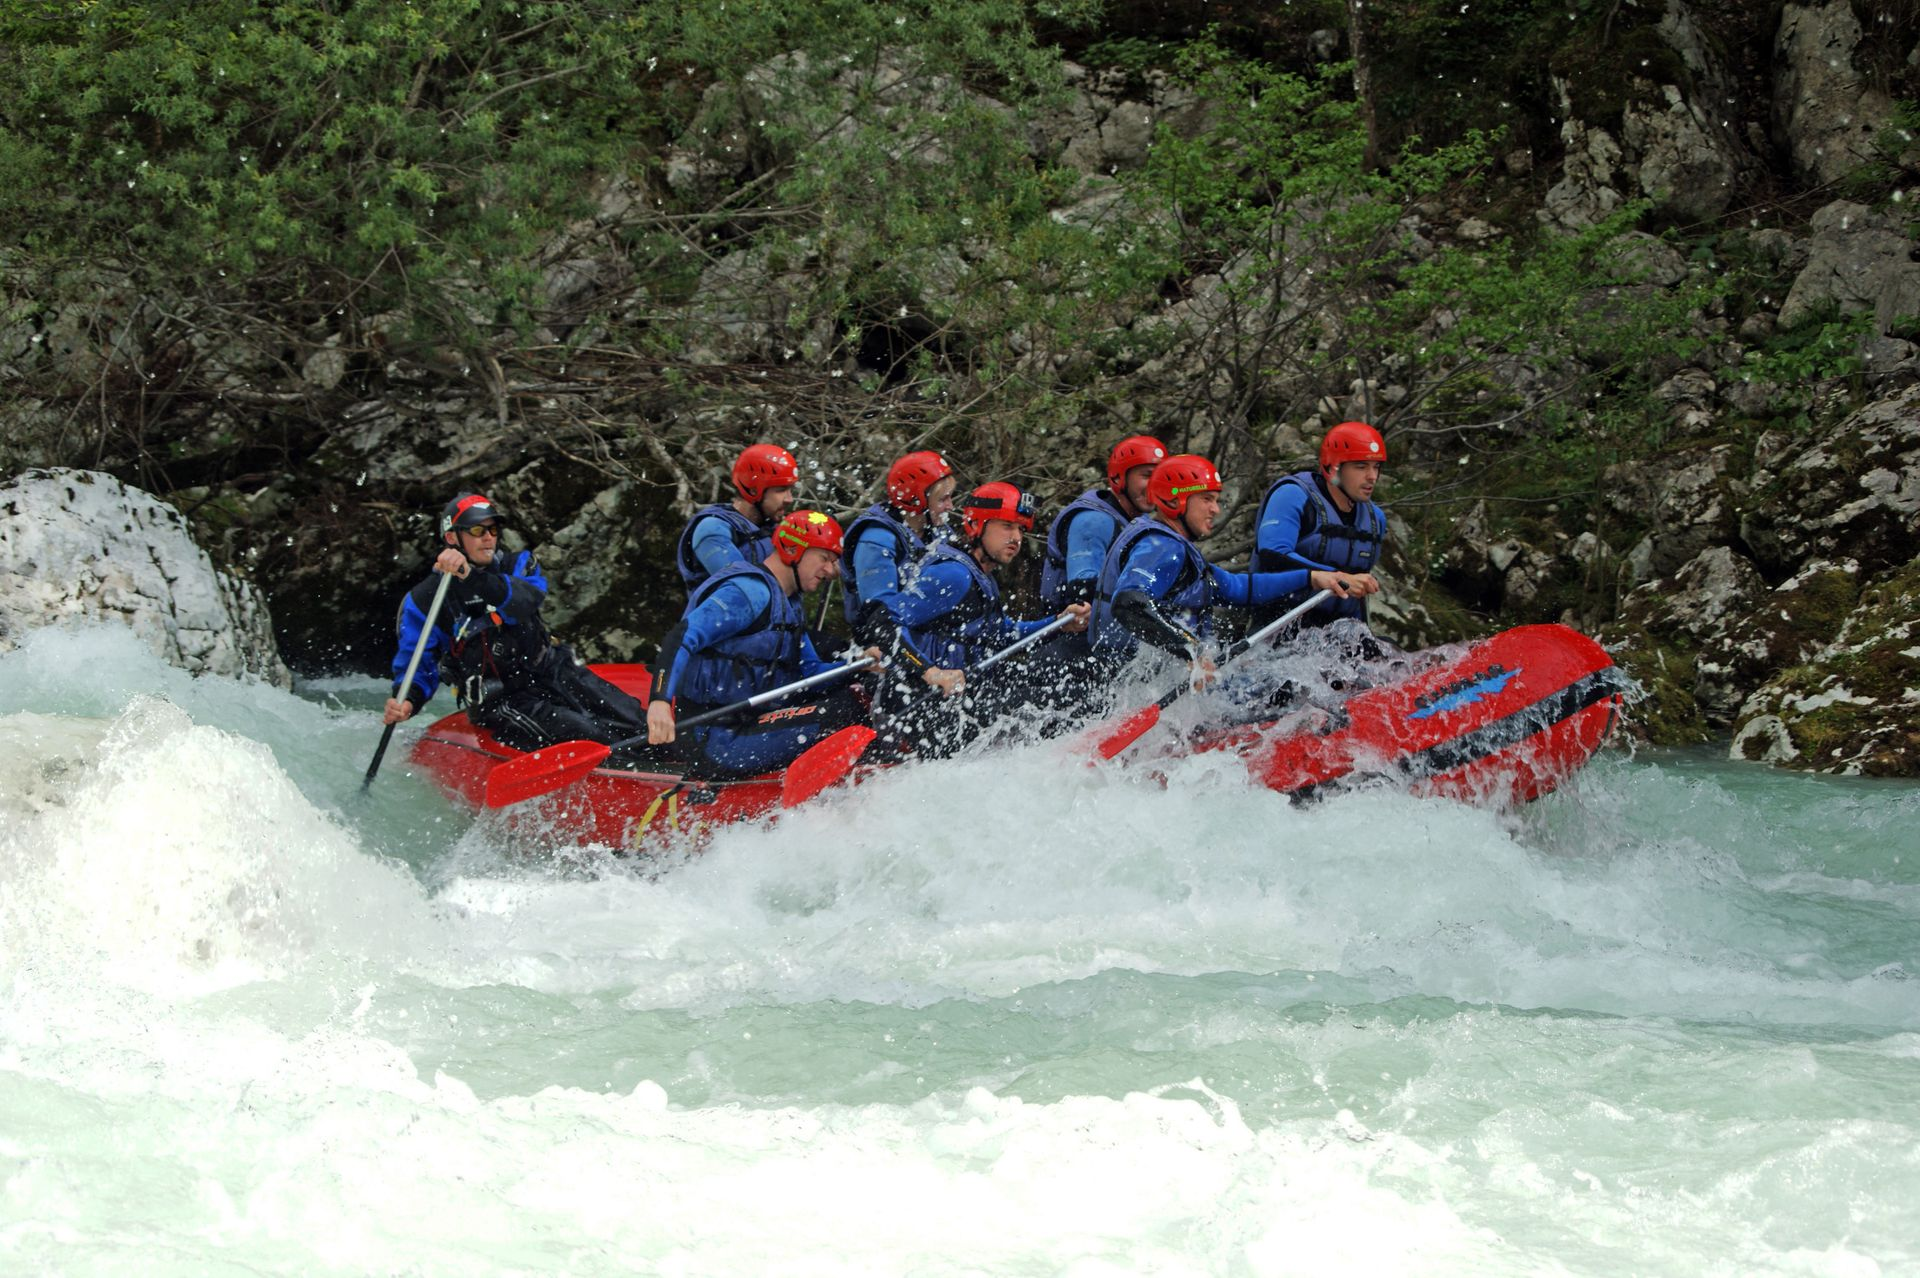 Rafting on Soca river in Bovec Bovec, Slovenia #ebcf5419-1a78-4688-b9db-07729876d44e